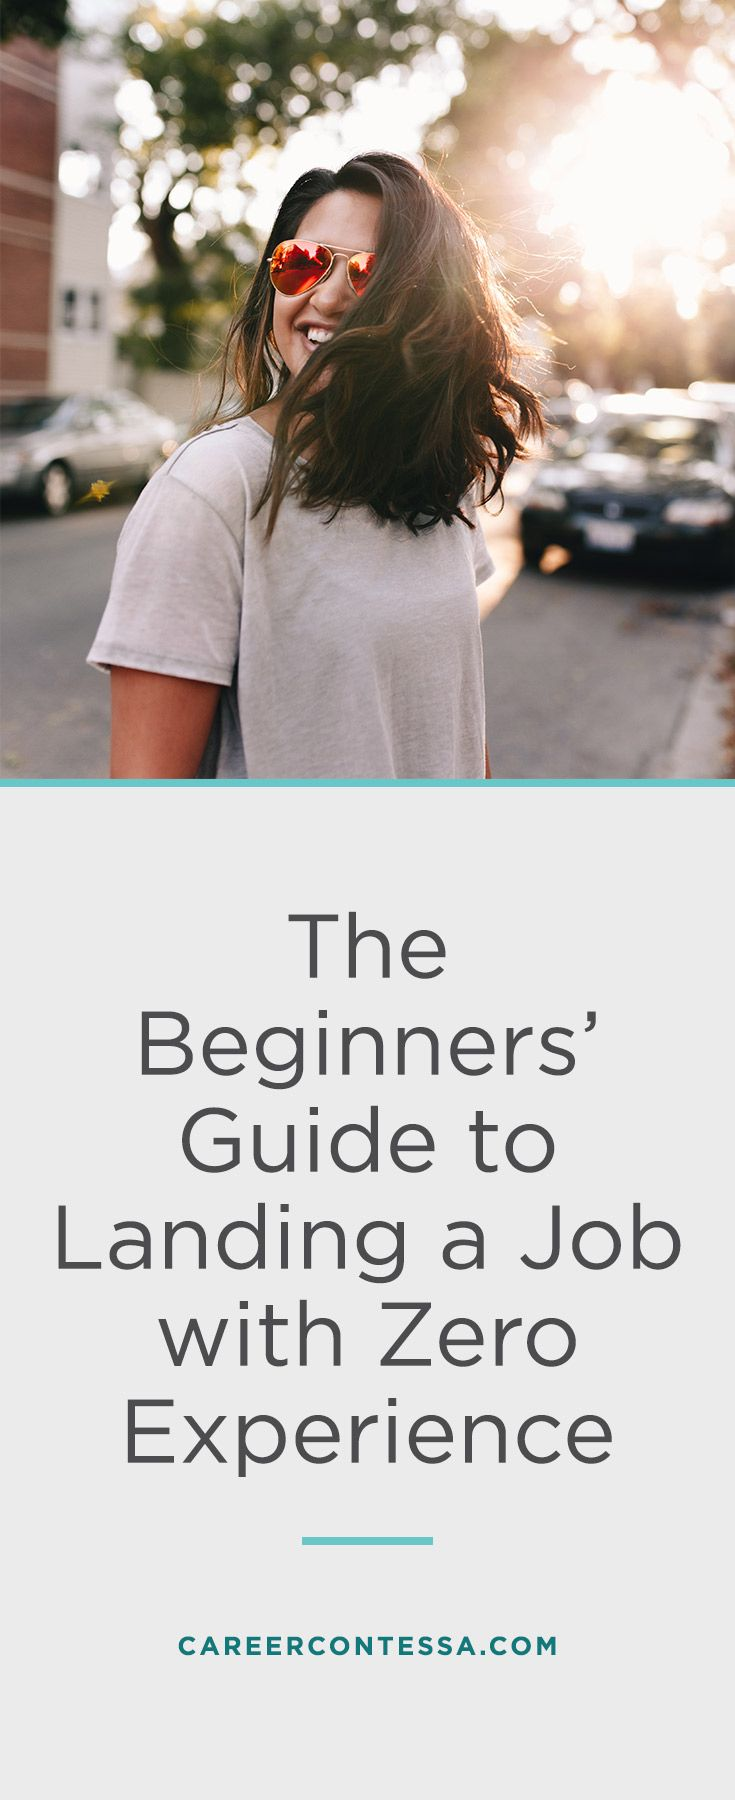 Finding your first job is not easy. Whether you've just graduated or are looking for a job in a new industry. You've graduated, worked internships, maybe even freelanced. But how do you make the jump into your first full-time job and actually start your career?It's a common issue: while you may have excelled at school, once you've dropped off the cap and gown, you've got a big problem: a blank (or nearly blank) resume. | Career Contessa